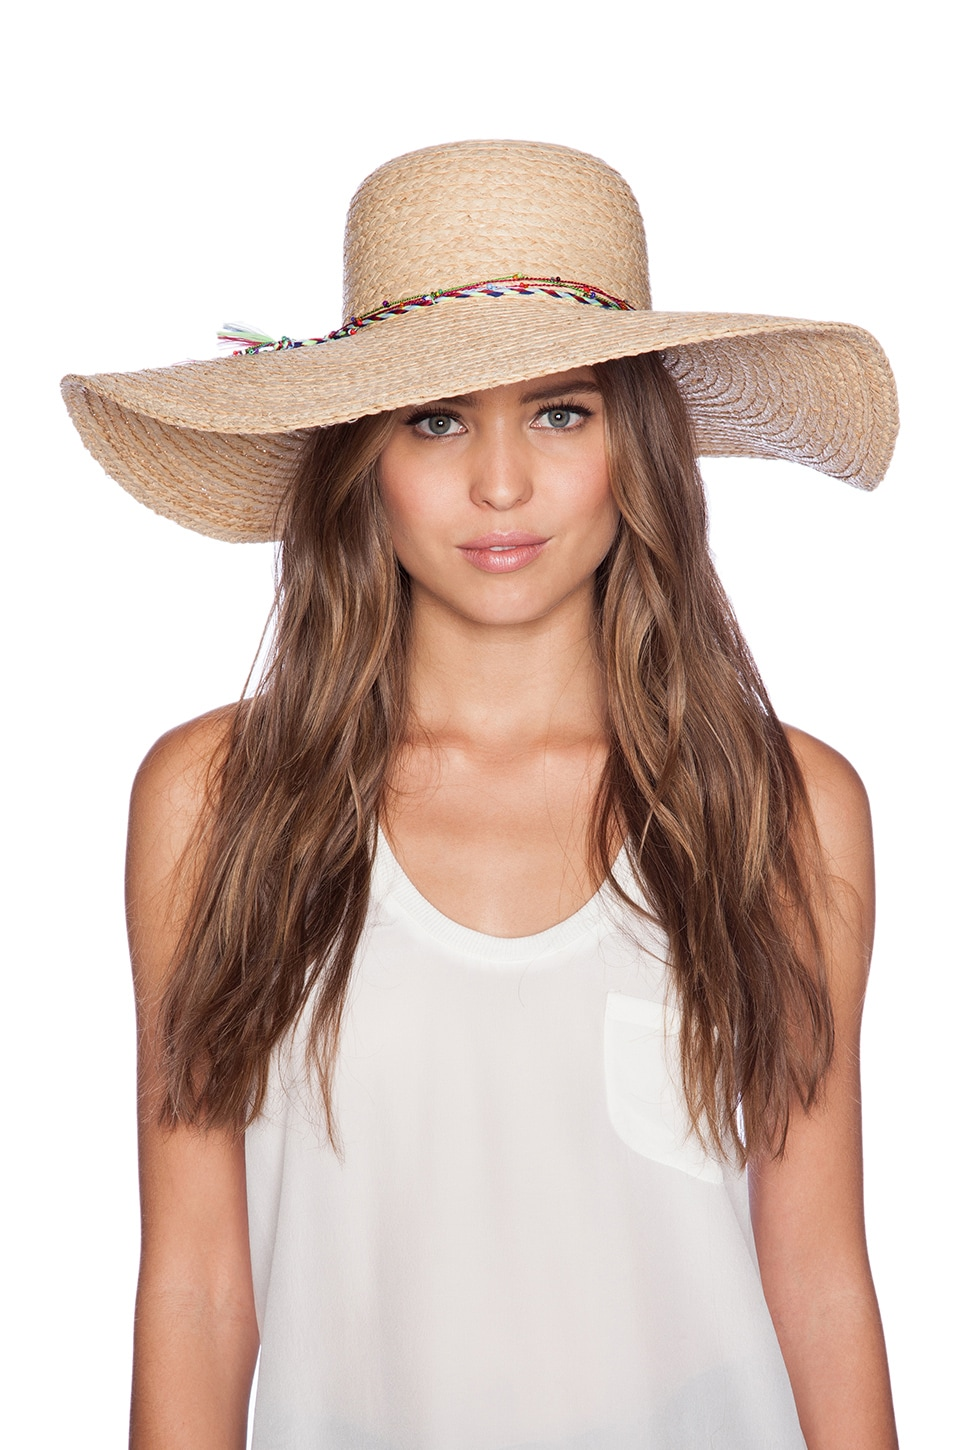 Hat Attack Sunhat in Natural & Multi